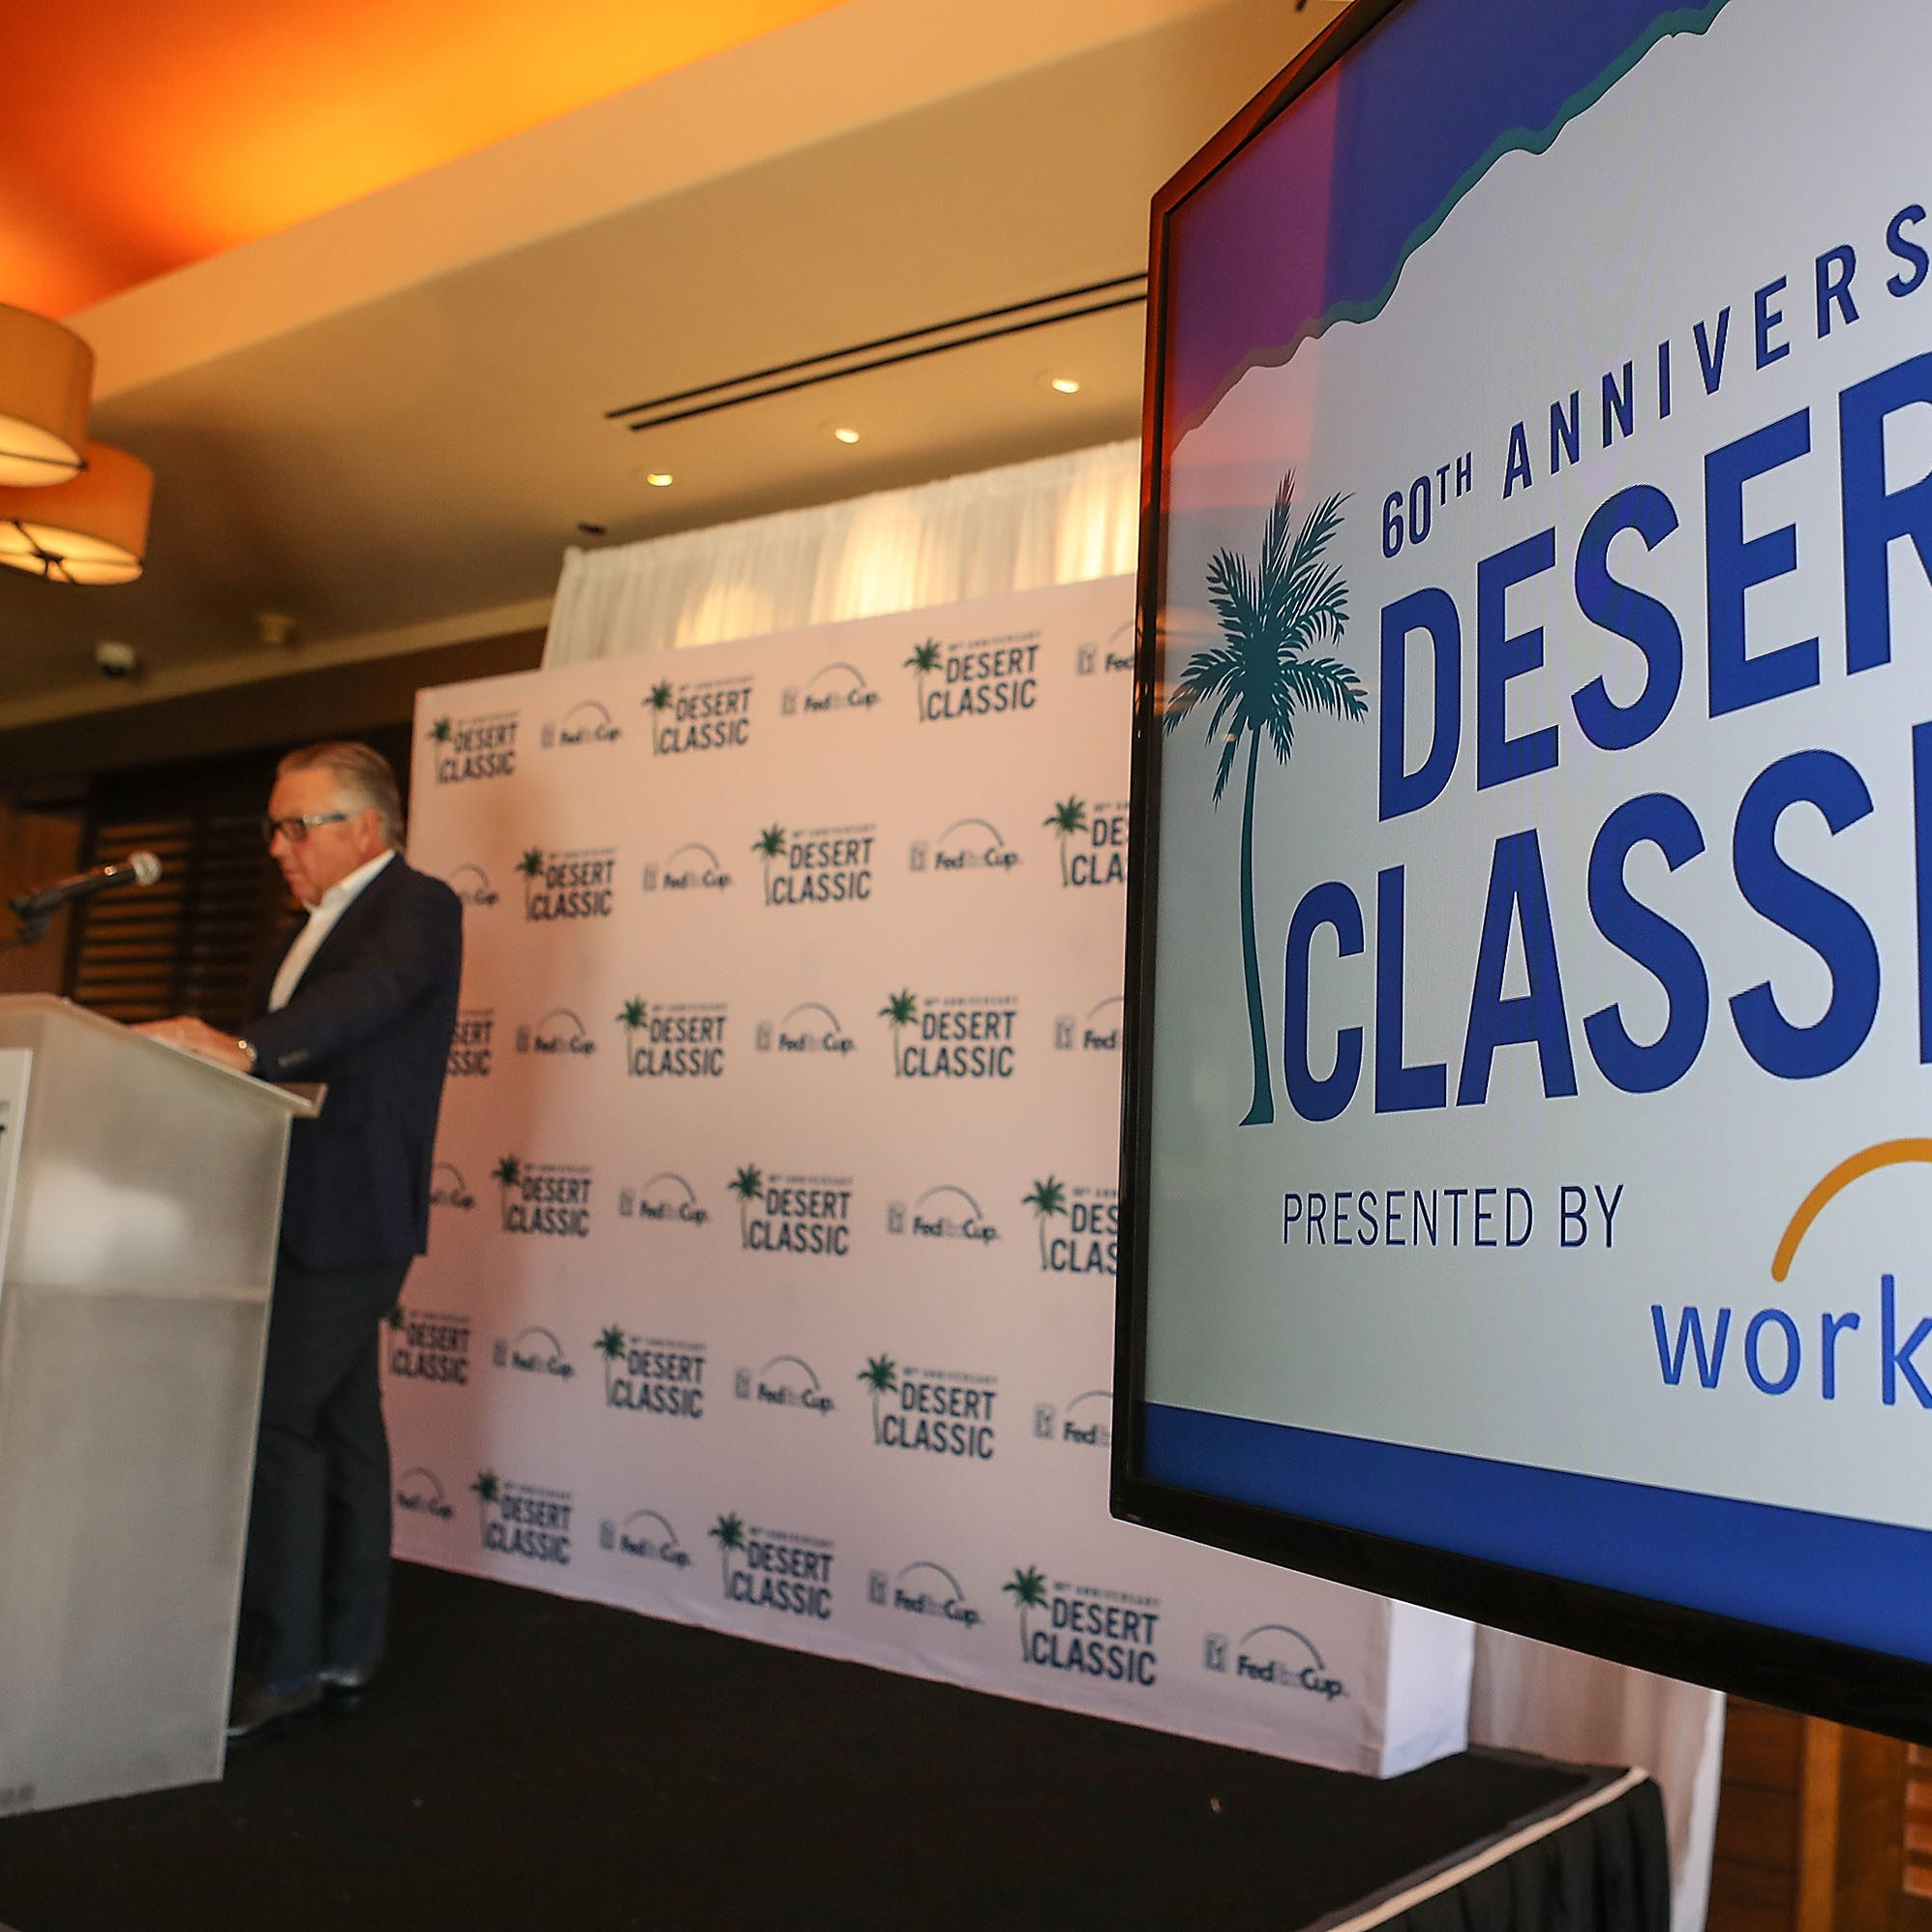 Desert Classic announces Workday as presenting sponsor for 2019 golf tournament